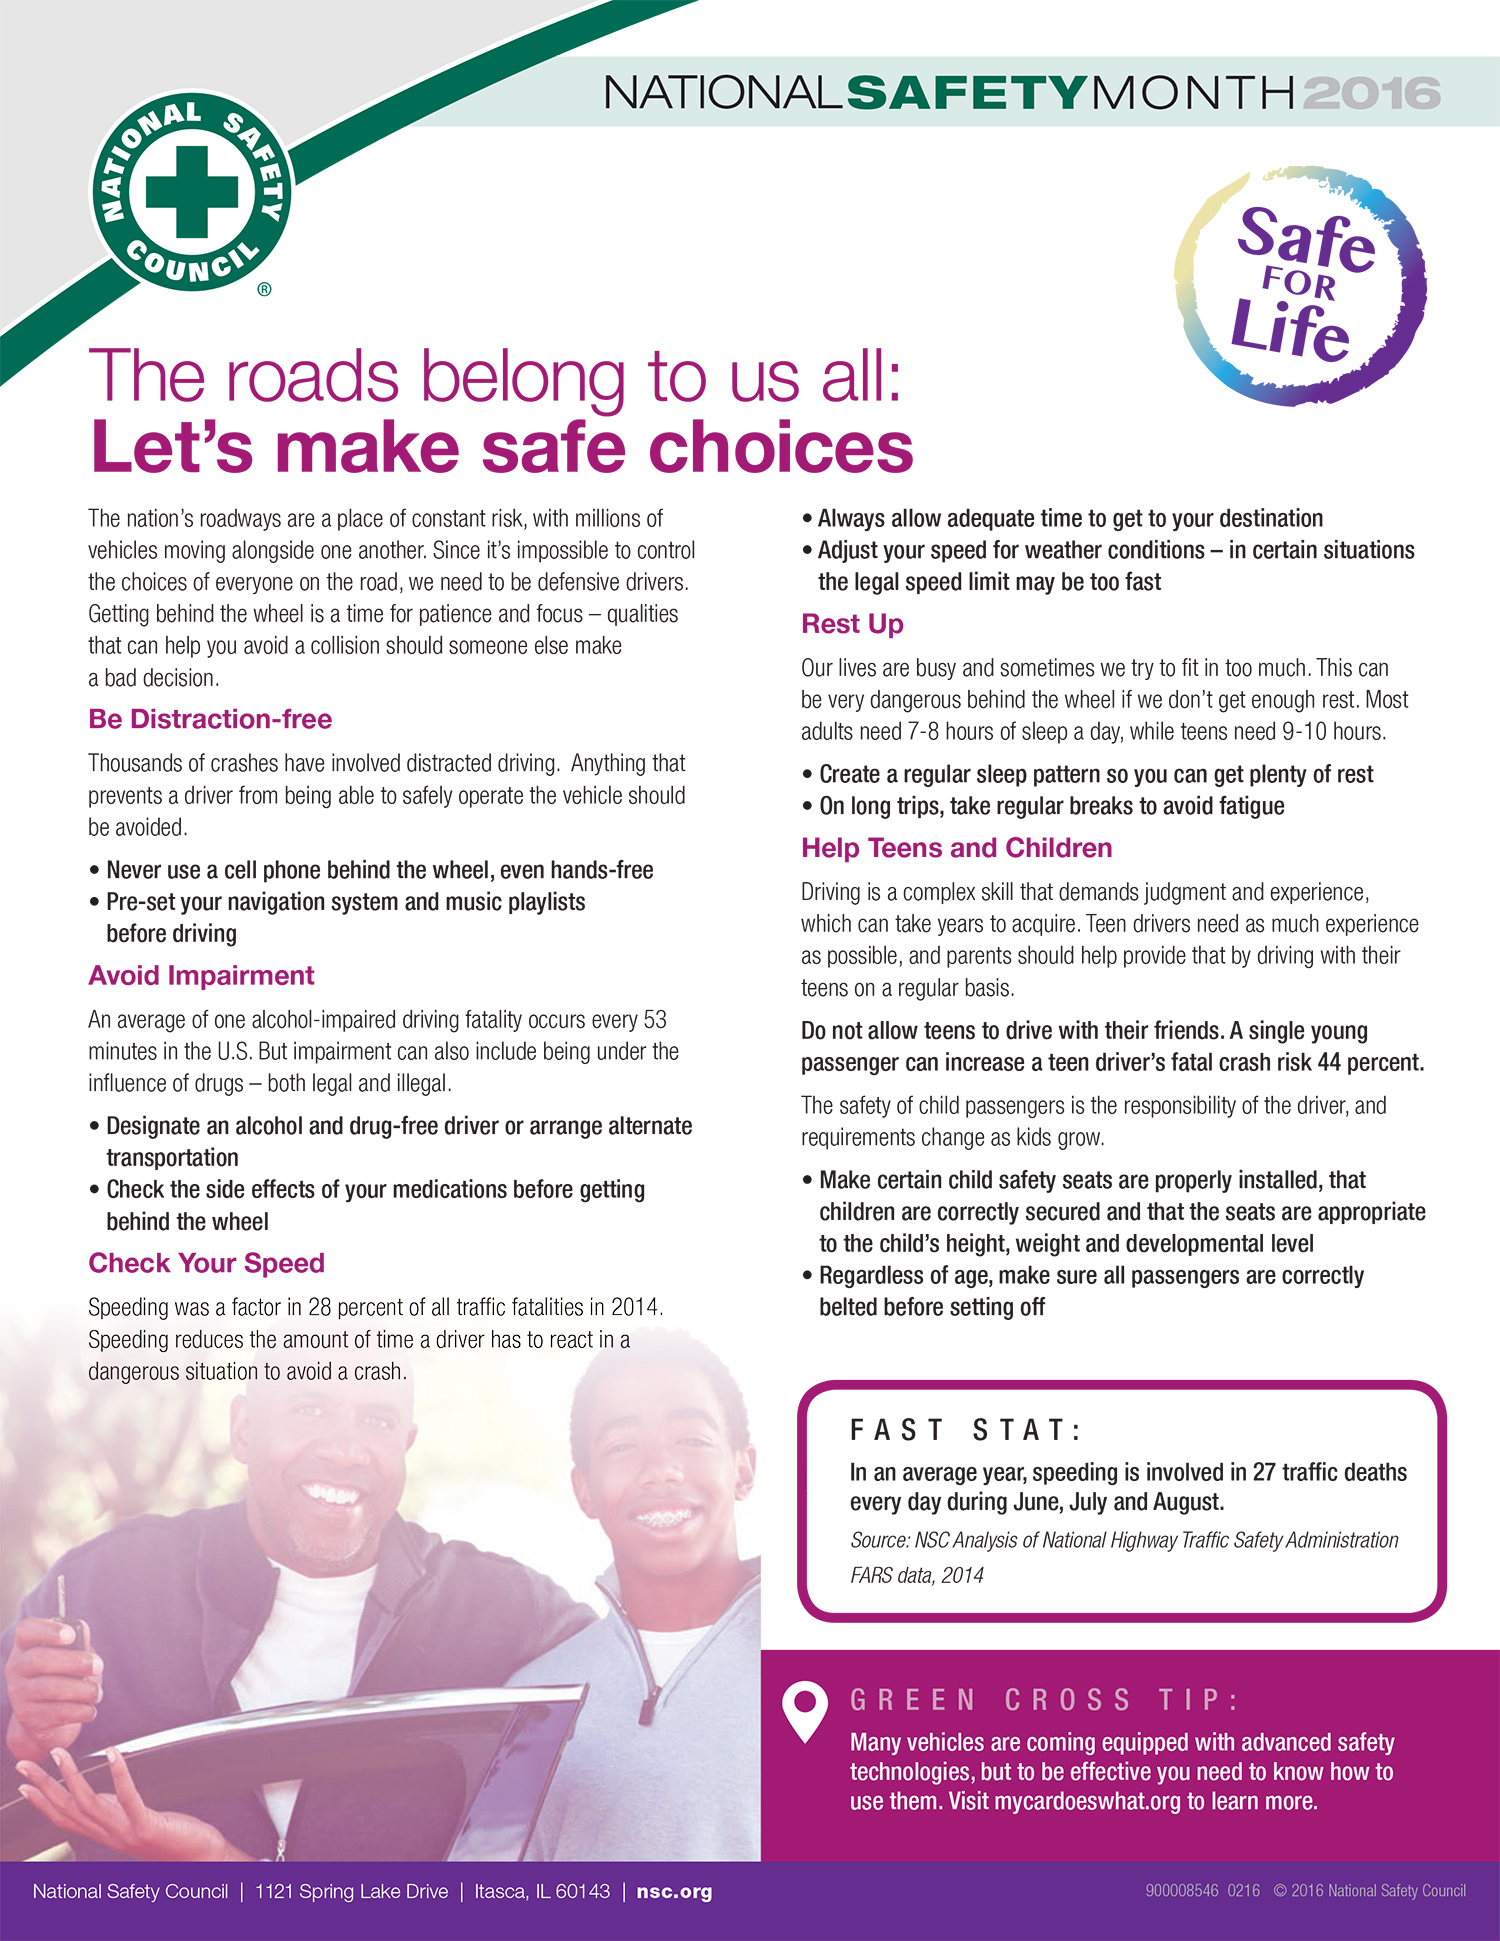 The roads belong to us all: Let's make safe choices